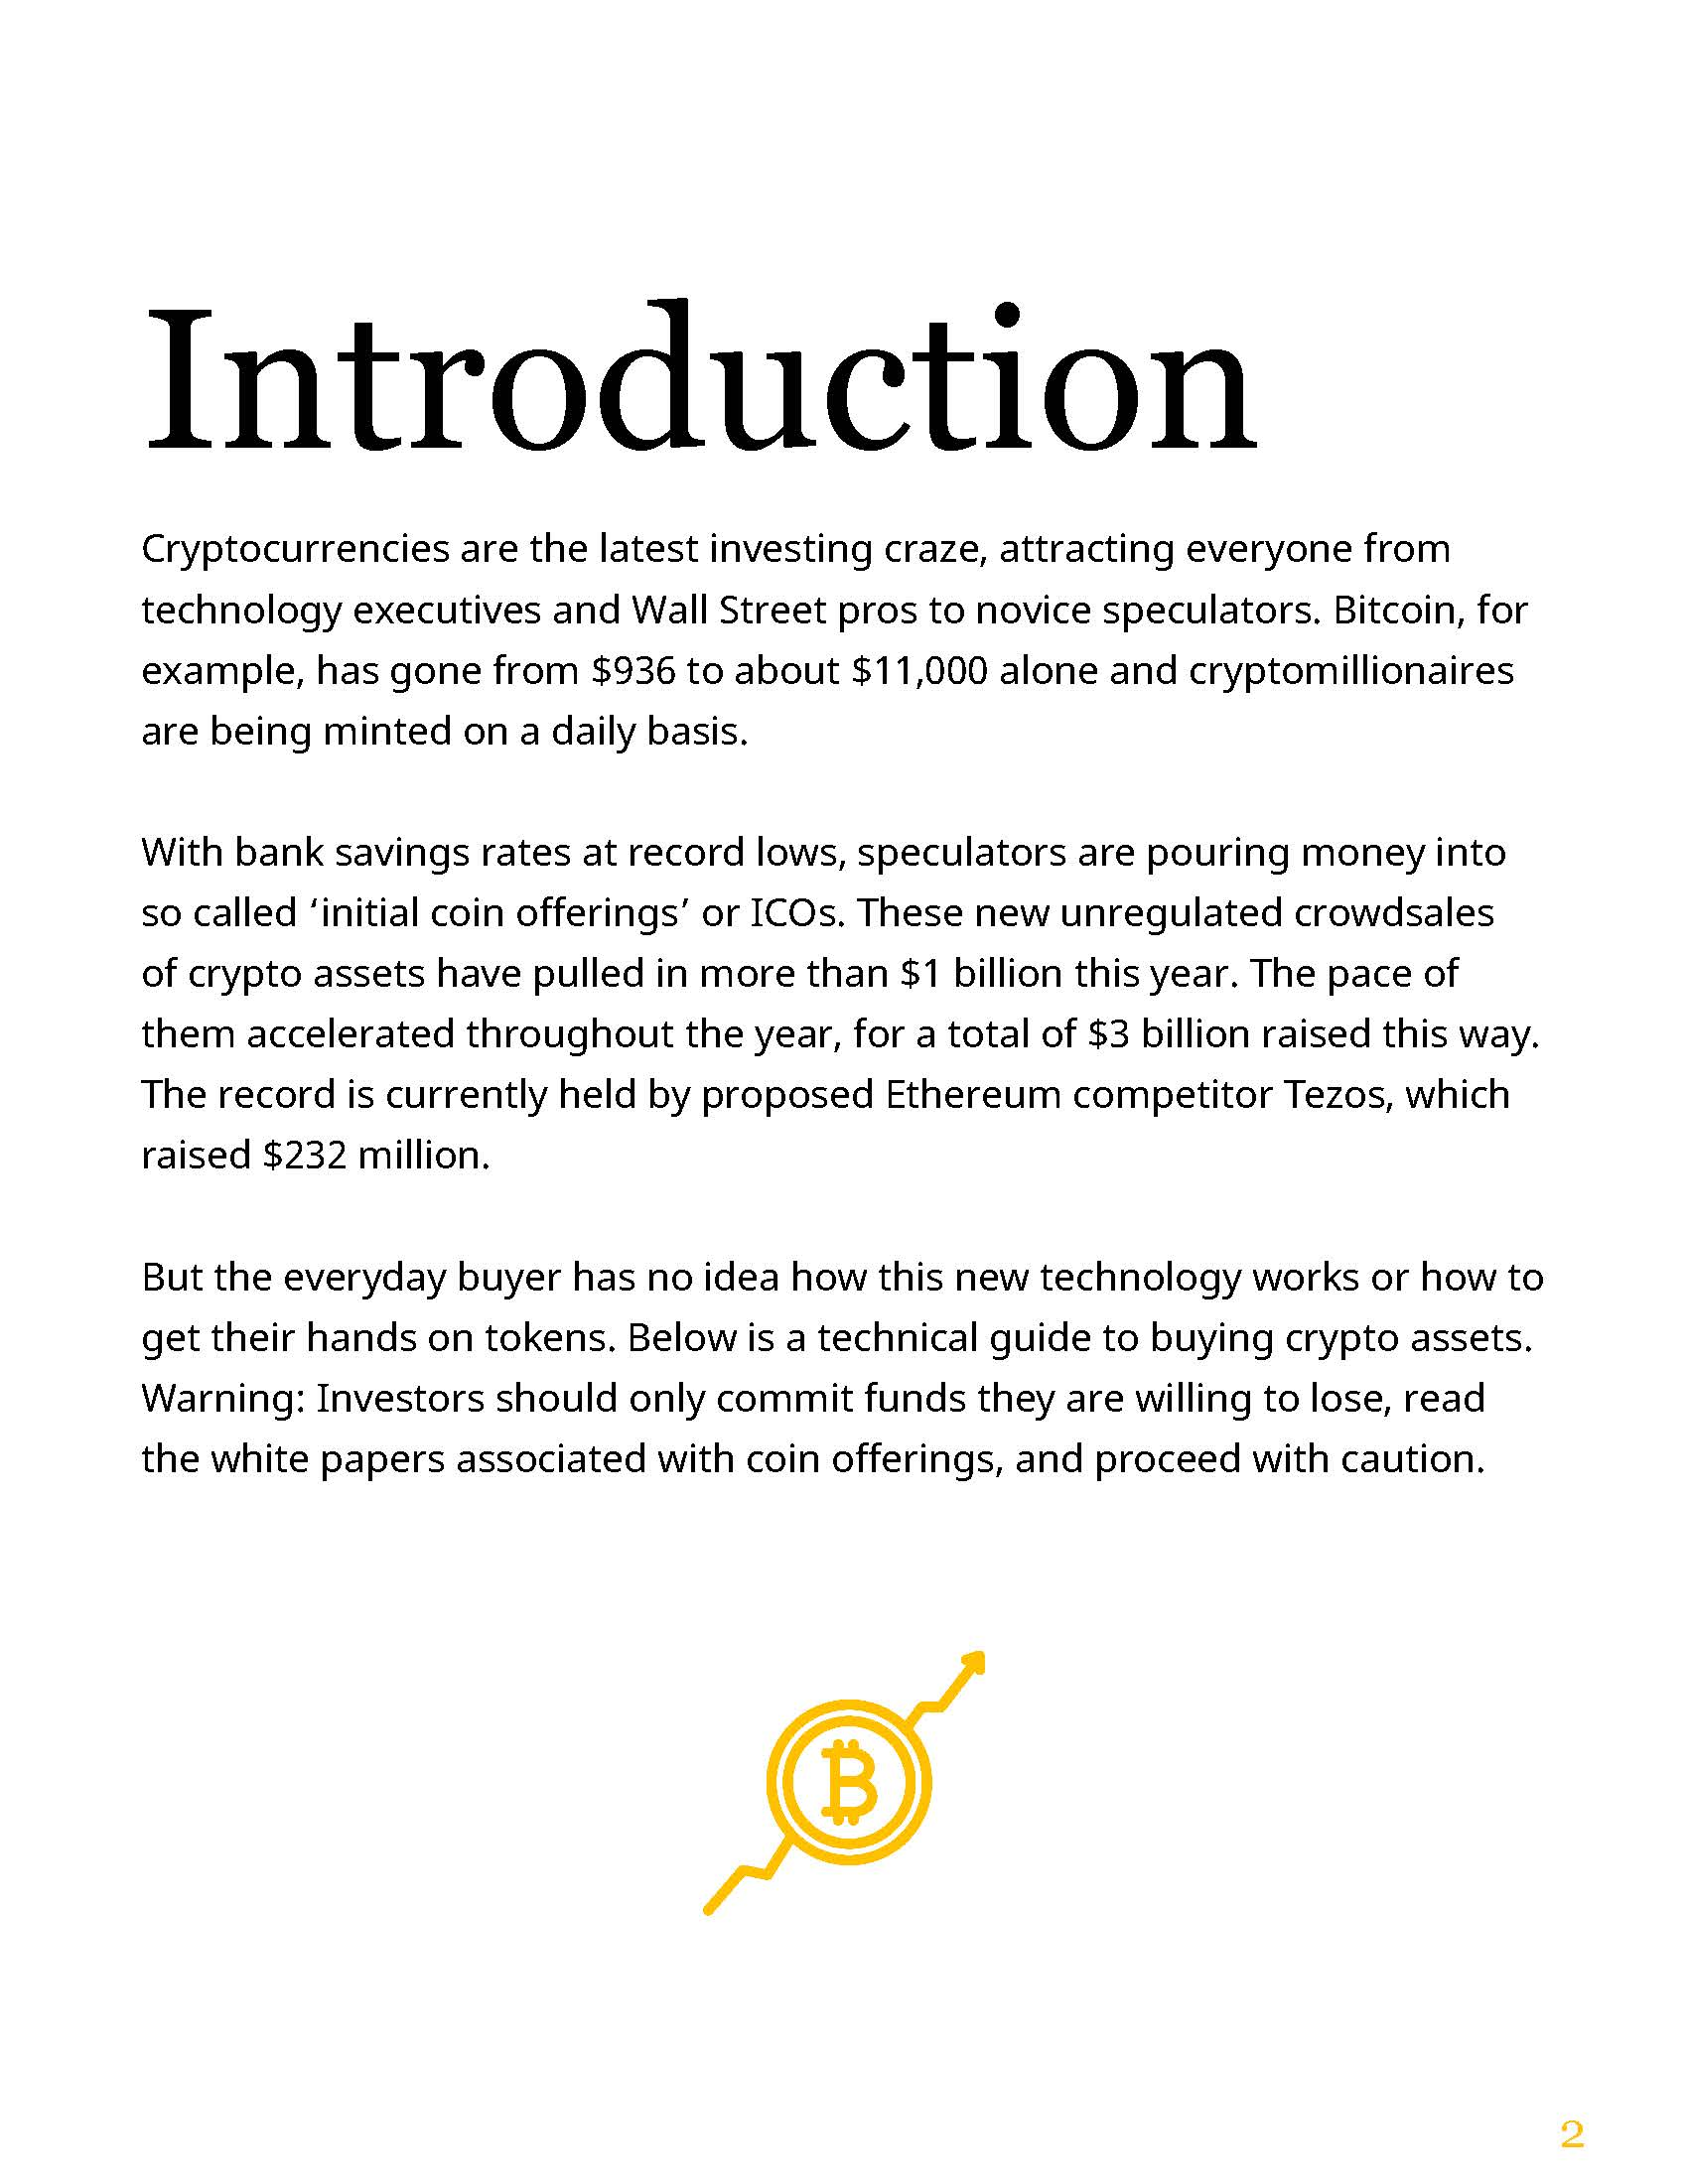 forbes-crypto-newsletter-r04_Page_02.jpg